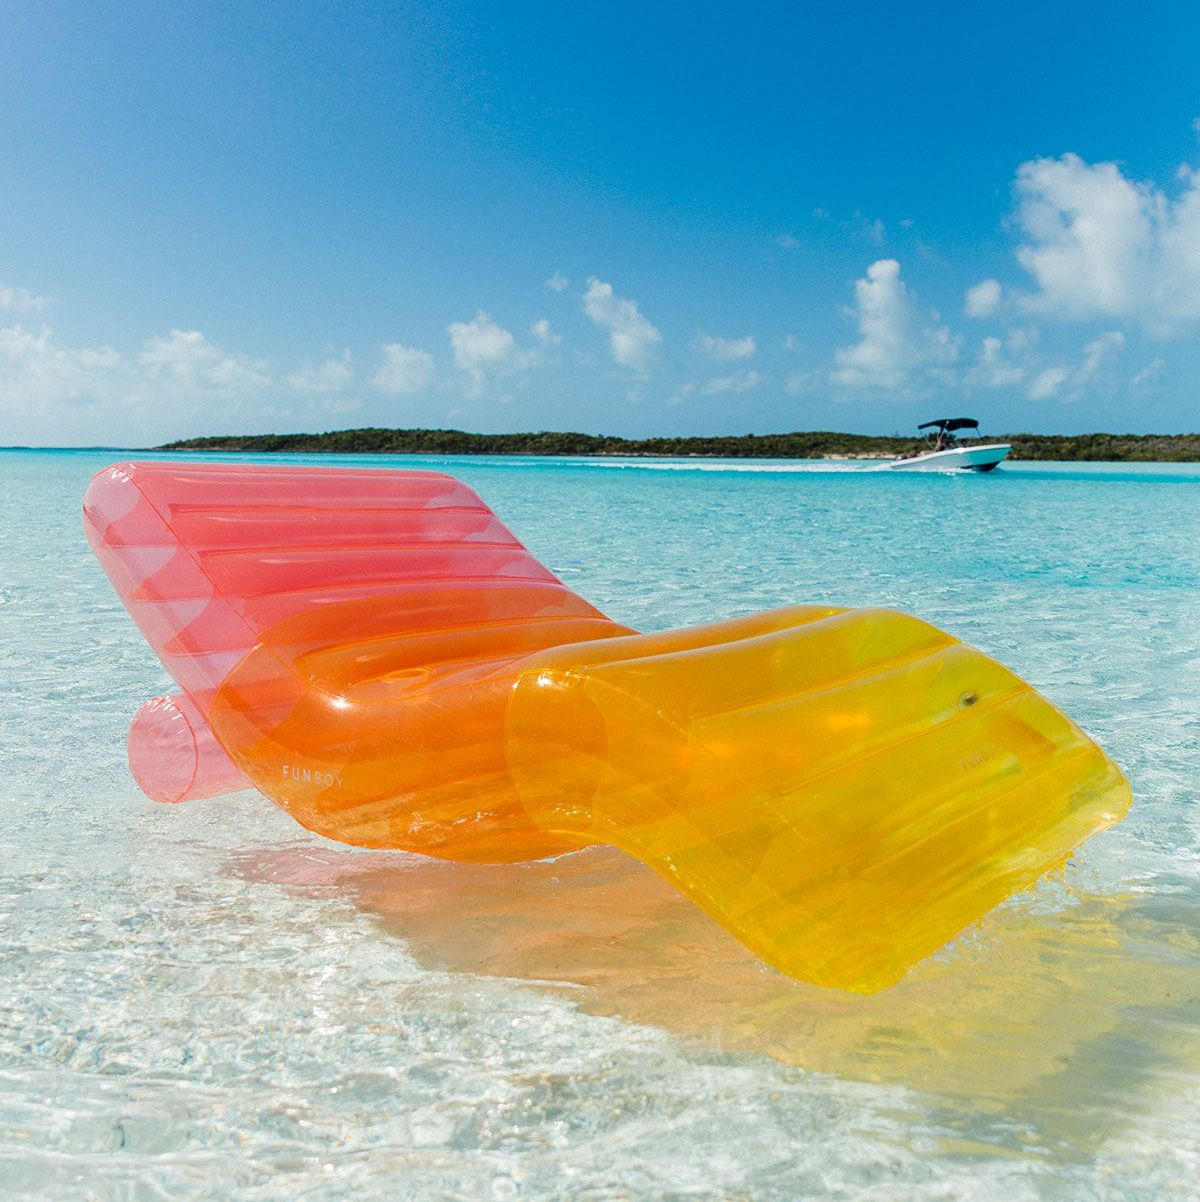 This Ombr 233 Inflatable Lounger Is The Prettiest Pool Float